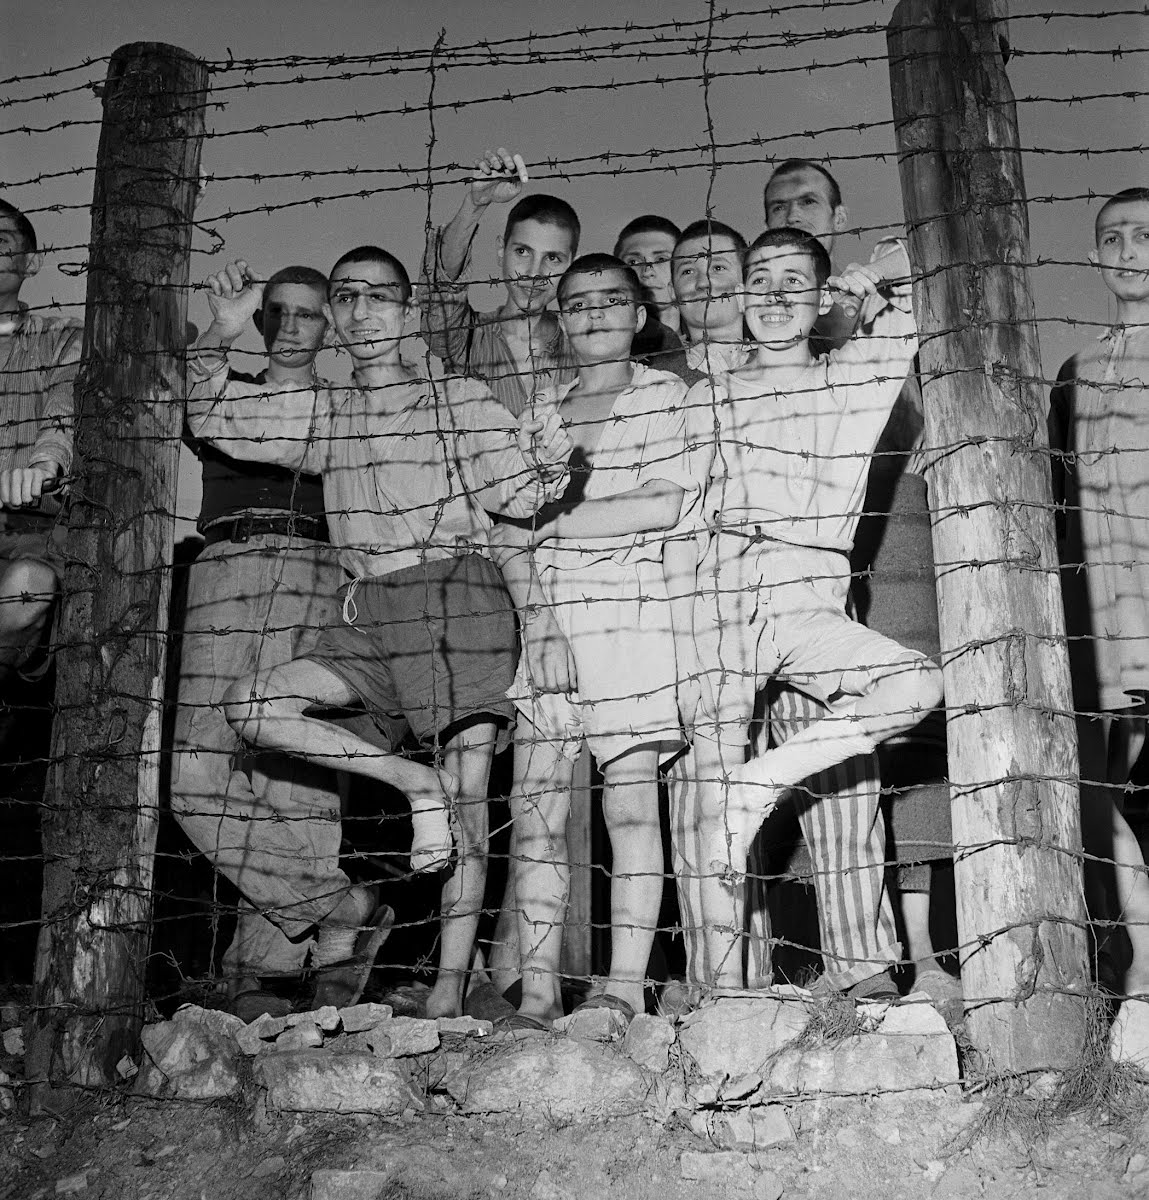 Buchenwald Concentration Camp